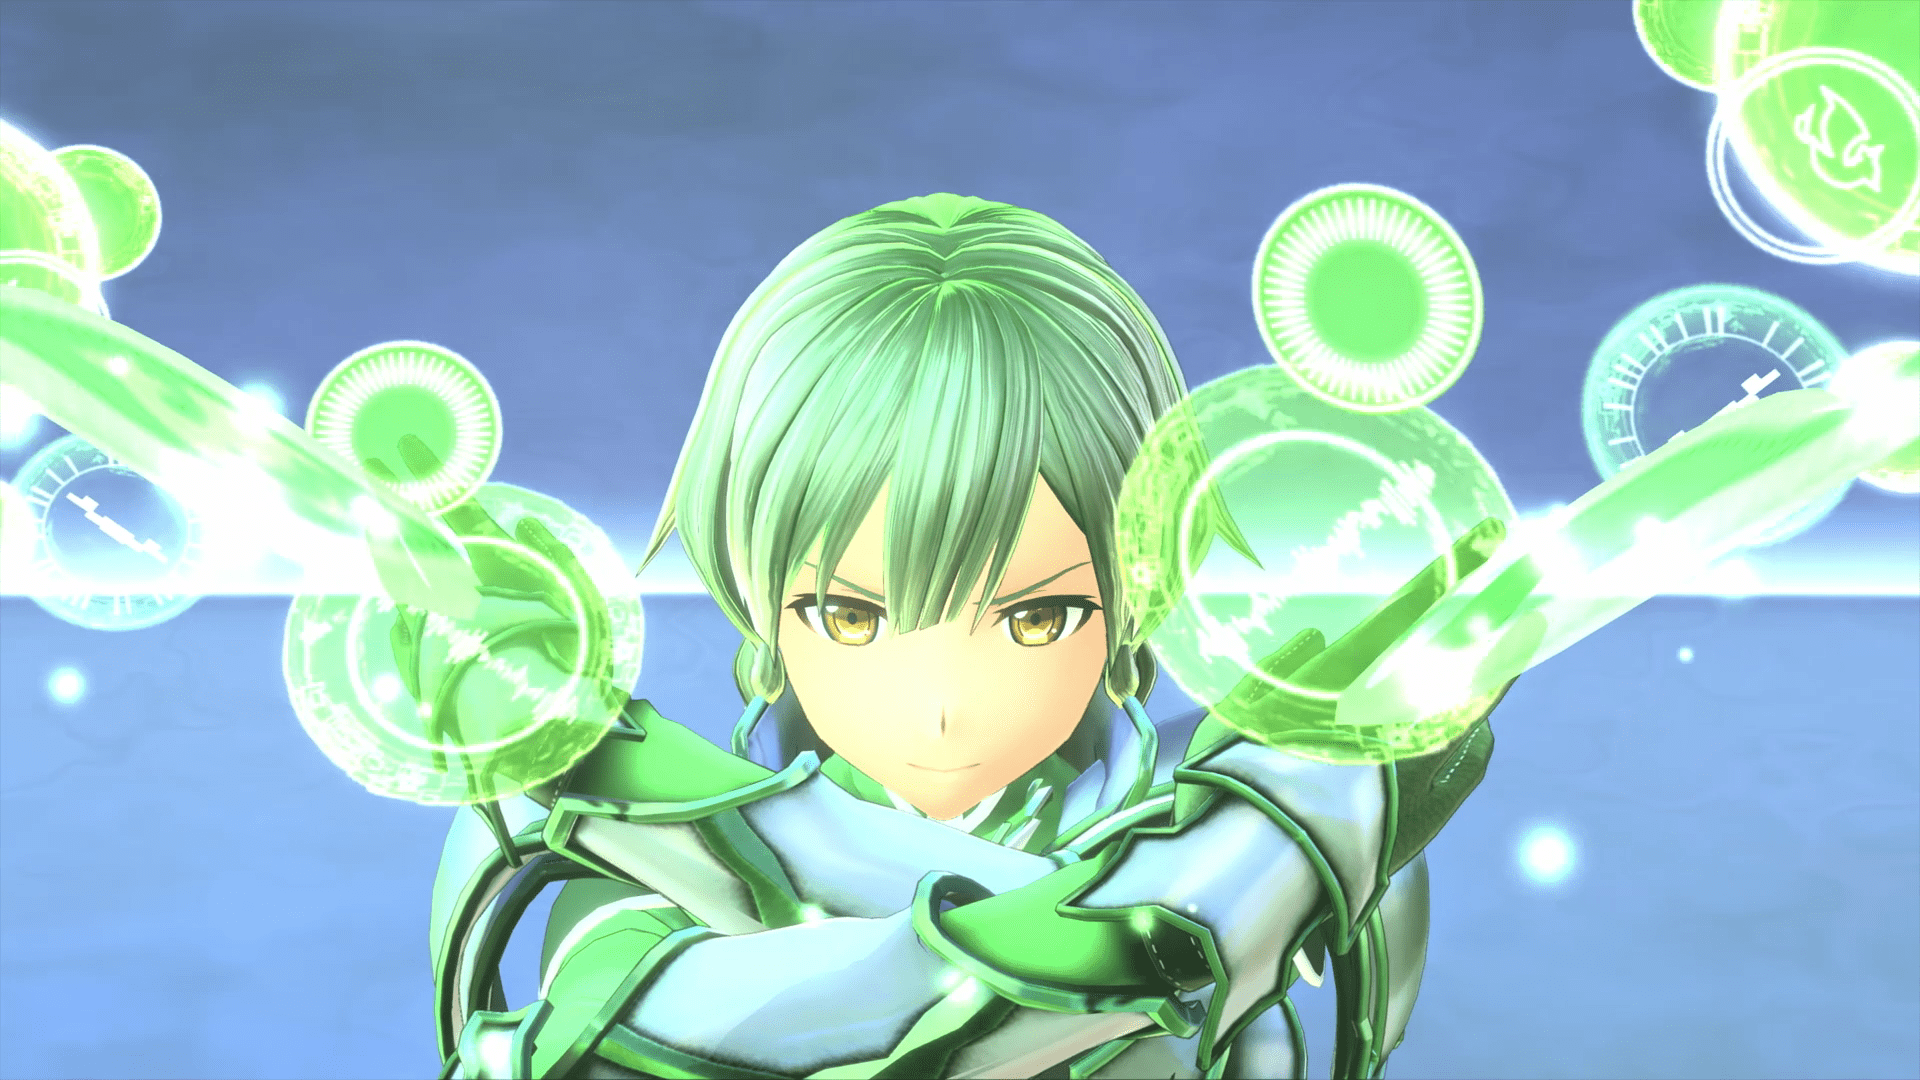 SWORD ART ONLINE: ALICIZATION LYCORIS Releases on 22nd May 2020 in Southeast Asia